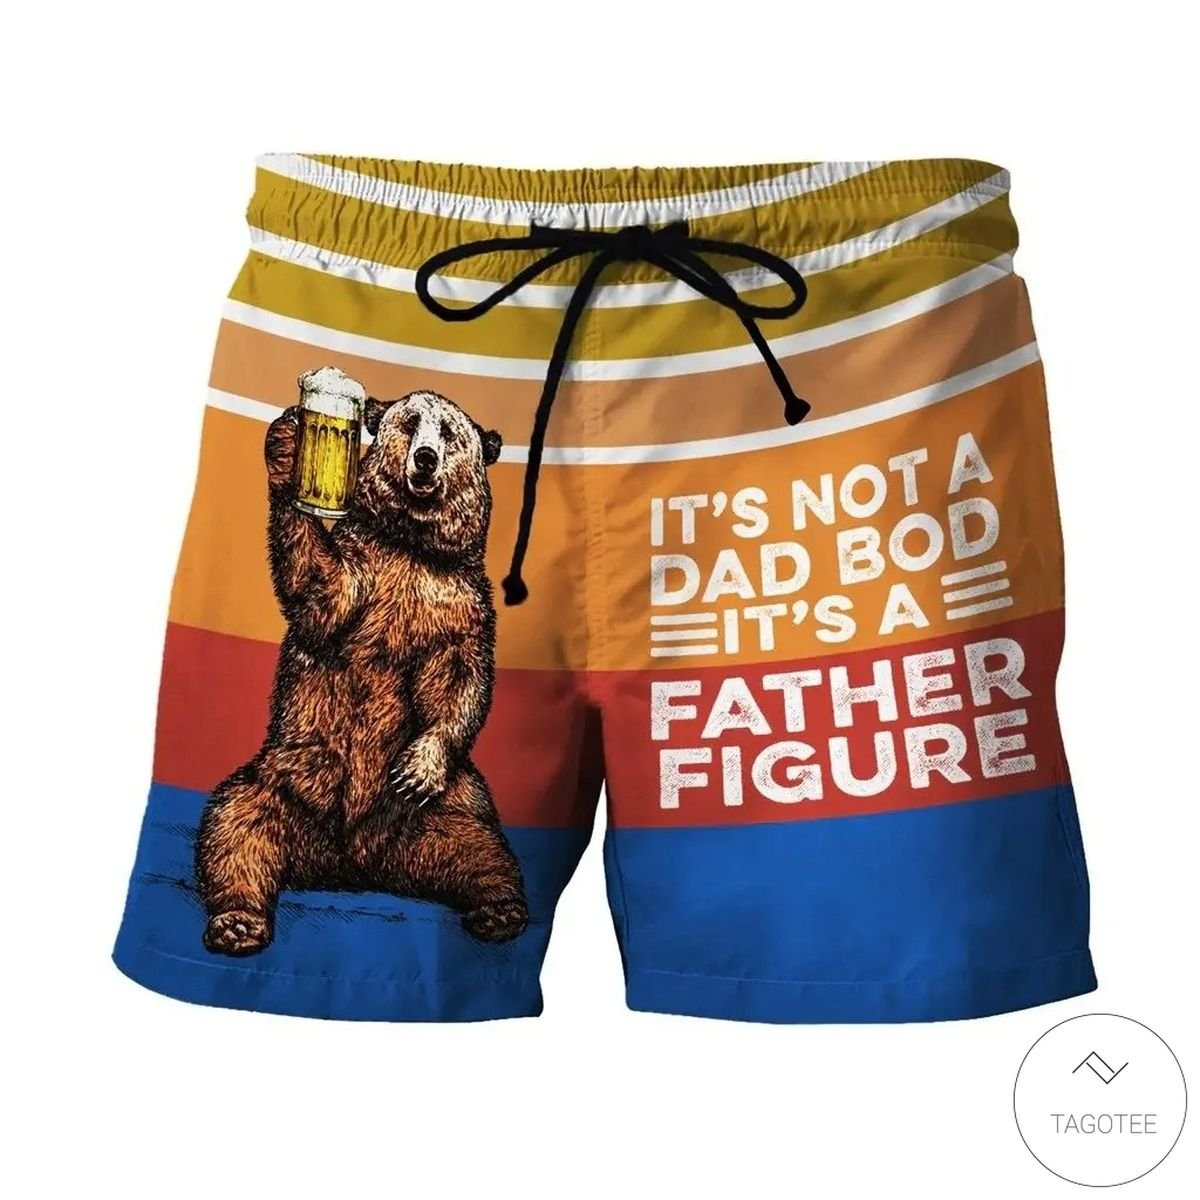 Bear Beer It's Not A Dad Bod It's A Father Figure Swim Trunks Beach Shorts